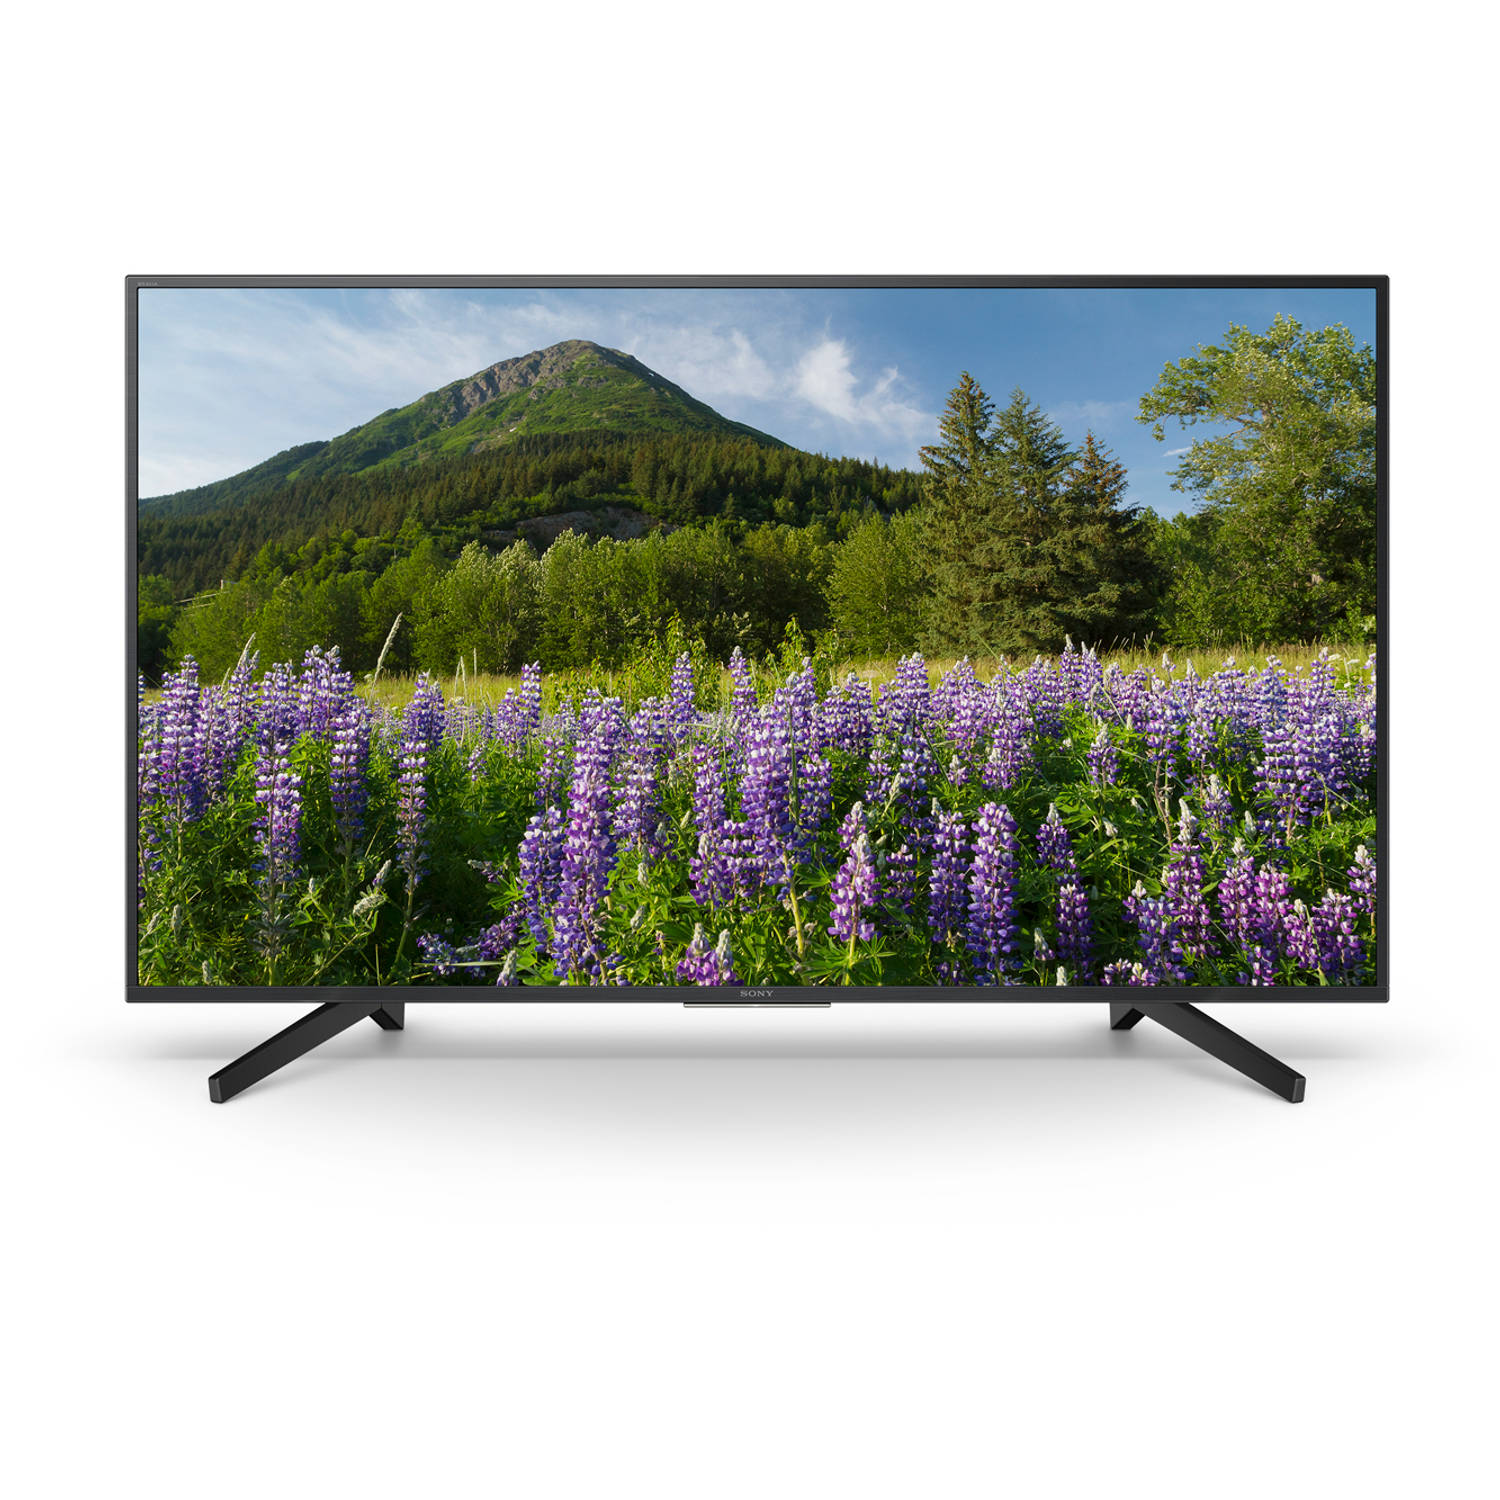 Sony KD43XF7000BAEP 4K Ultra HD TV